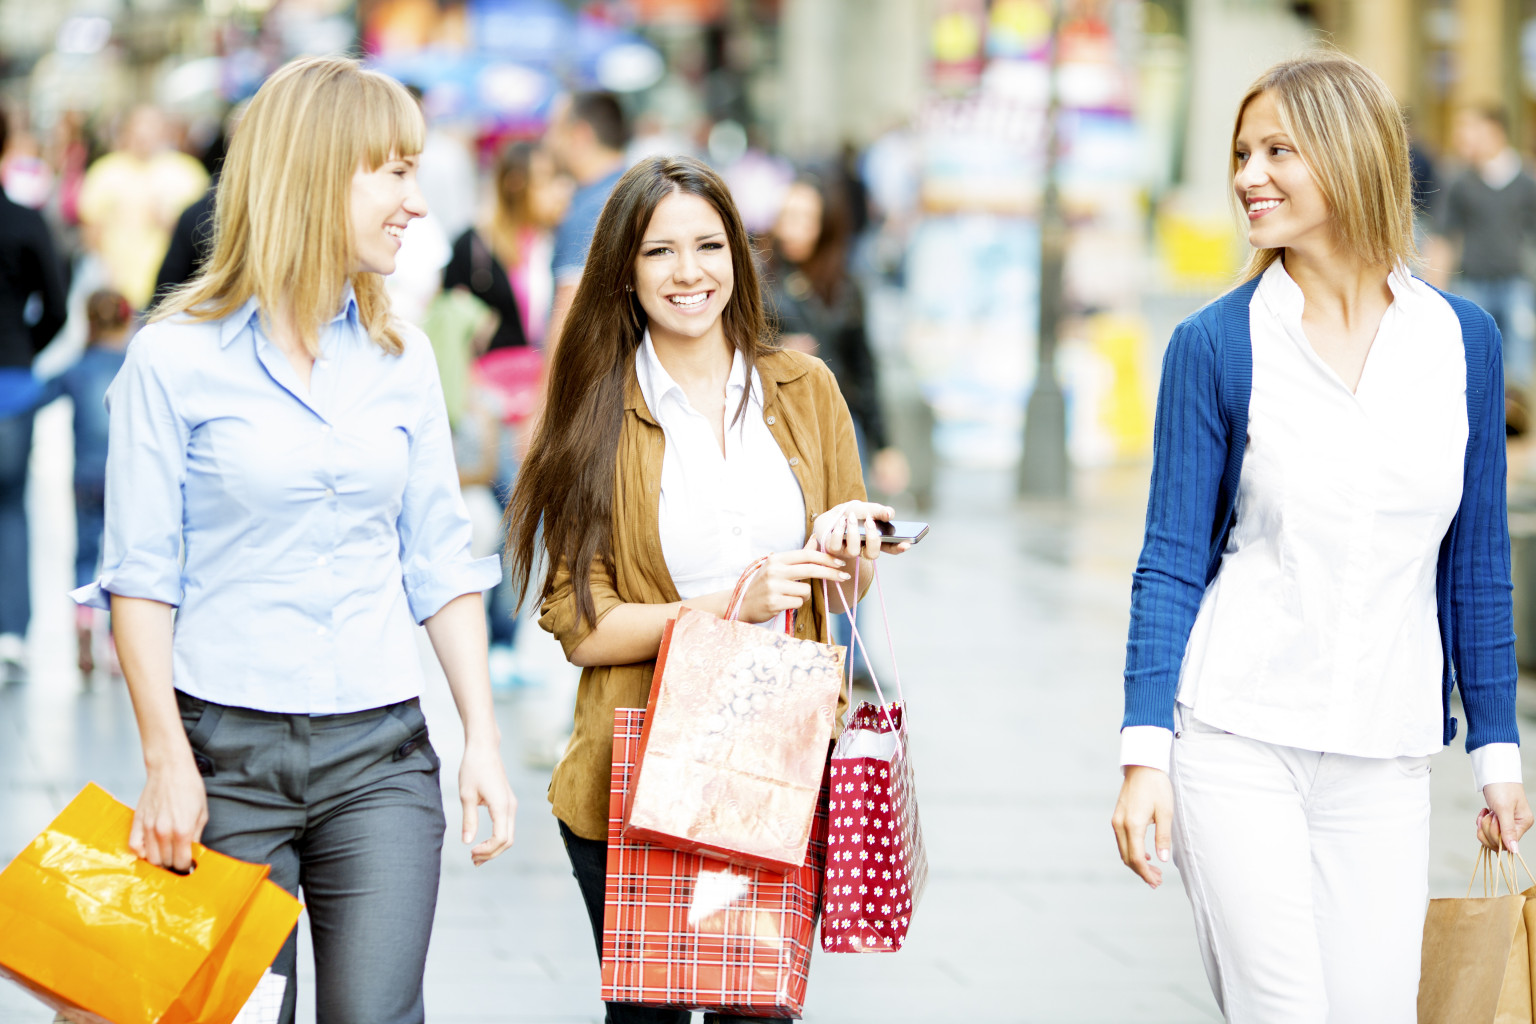 Cheerful Young Women Shopping.